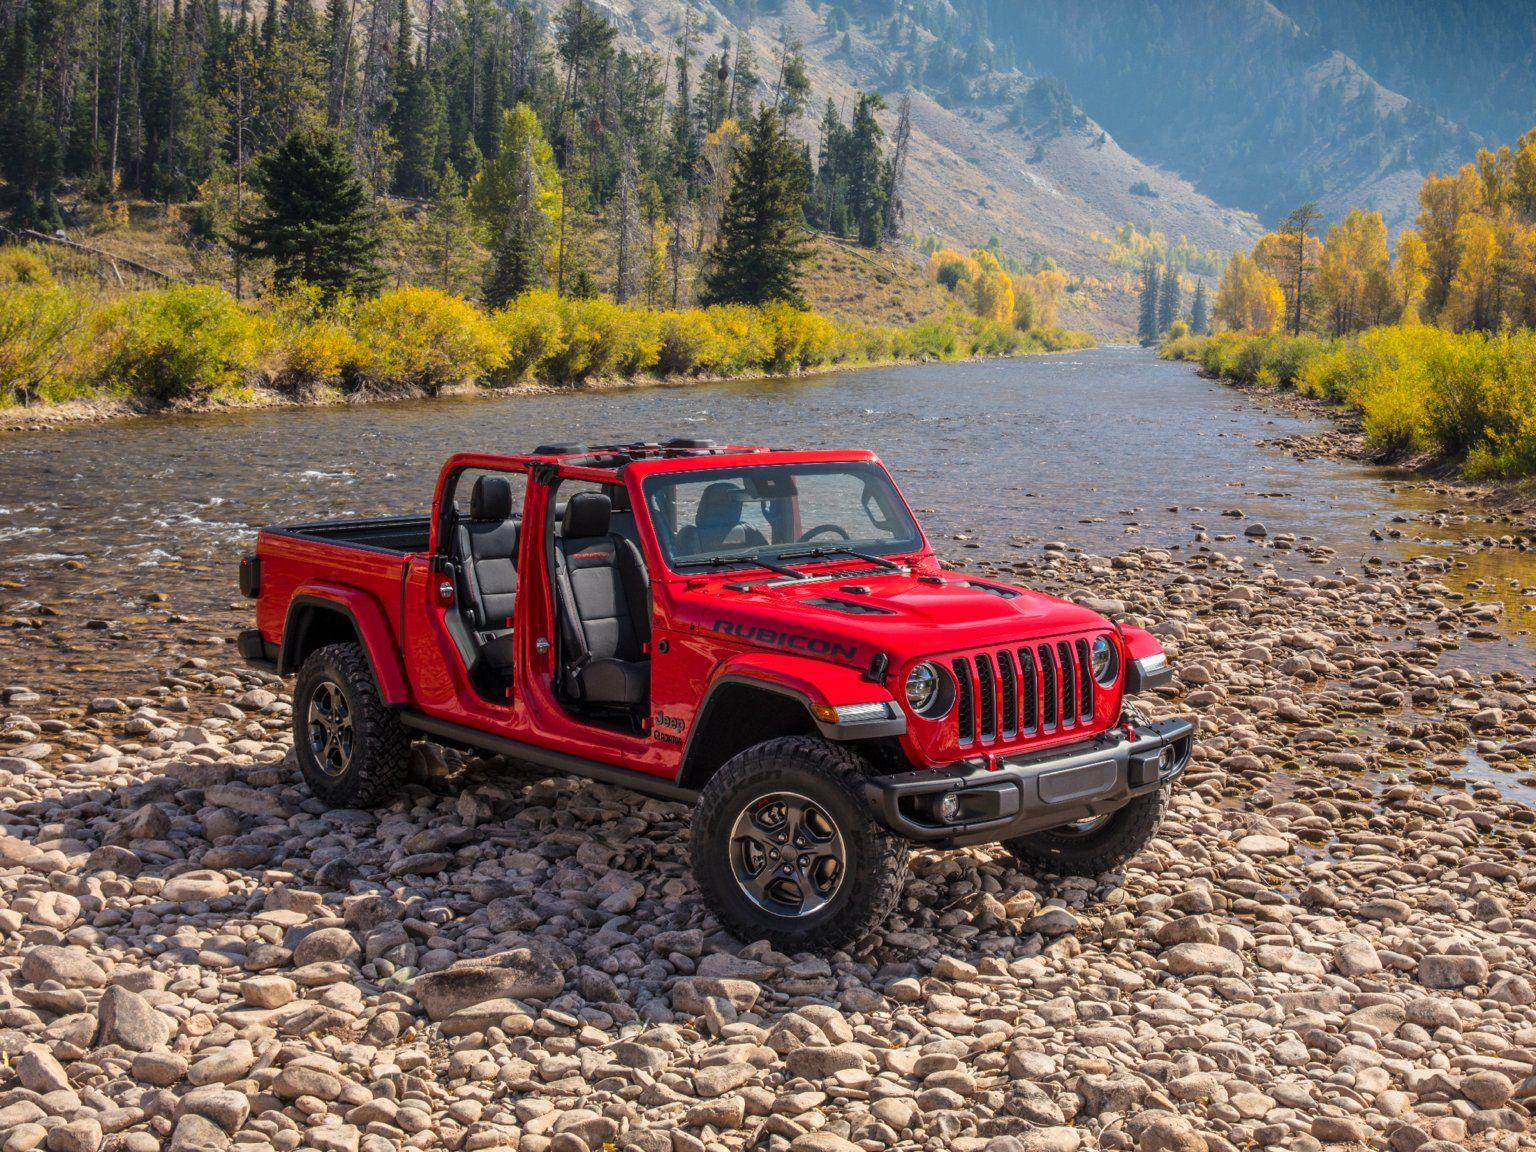 Jeep Just Jumped Into The Pickup Truck Game To Take On Ford Chevy And Toyota With The Most Capable Midsize Truck Ever Jeep Gladiator Jeep Pickup Truck Jeep Pickup